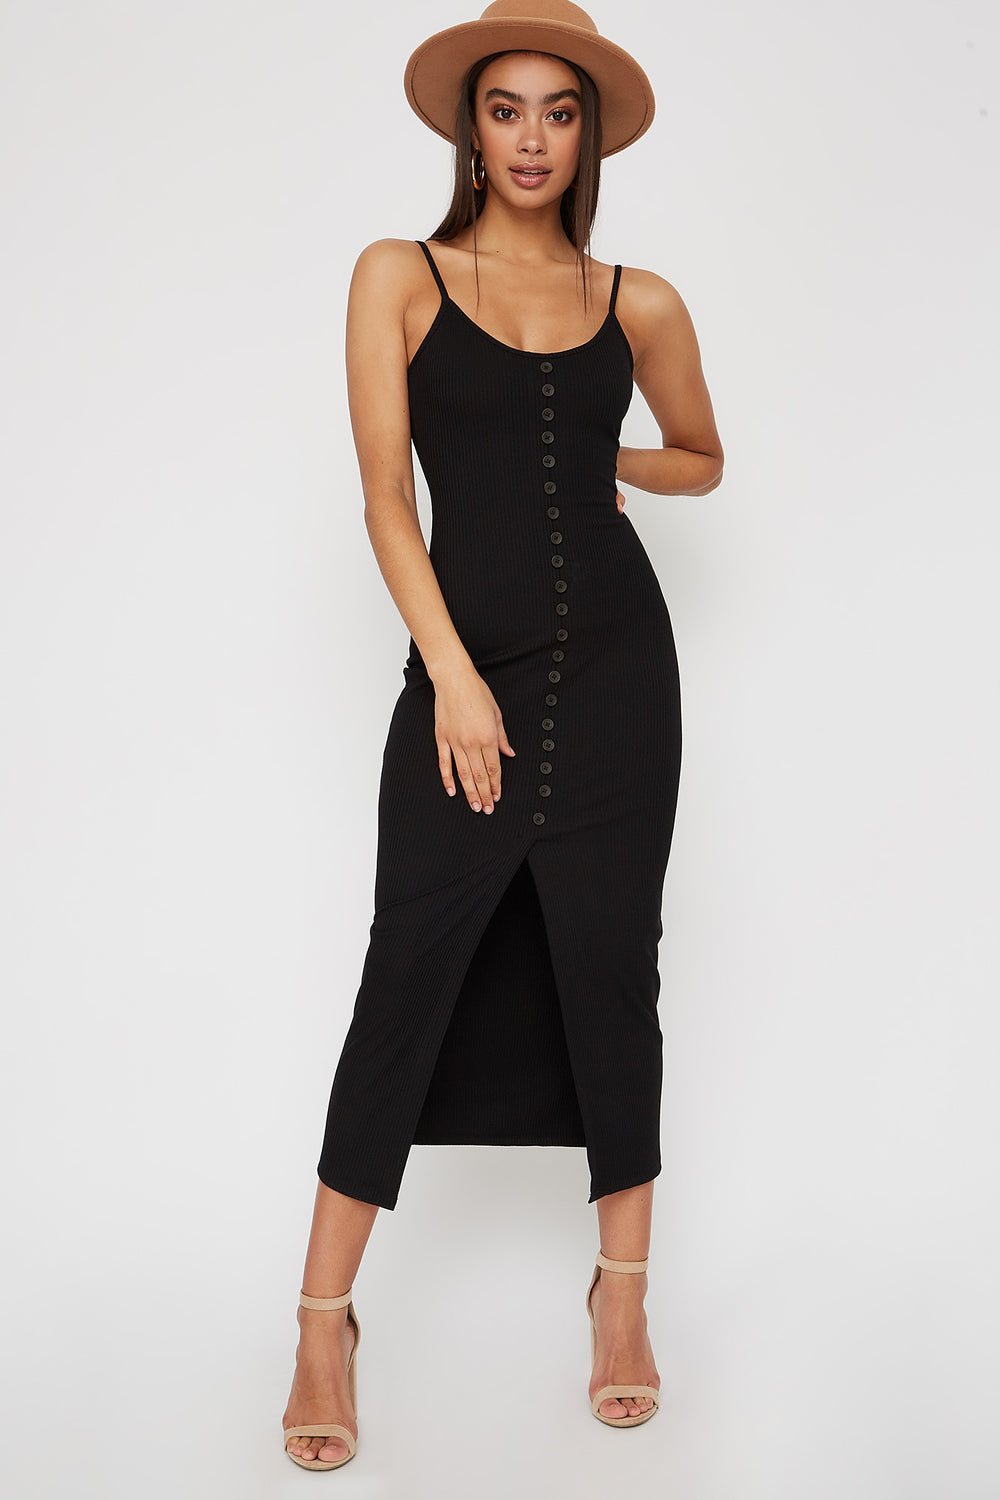 Ribbed Button Cut Out Sleeveless Midi Dress Black